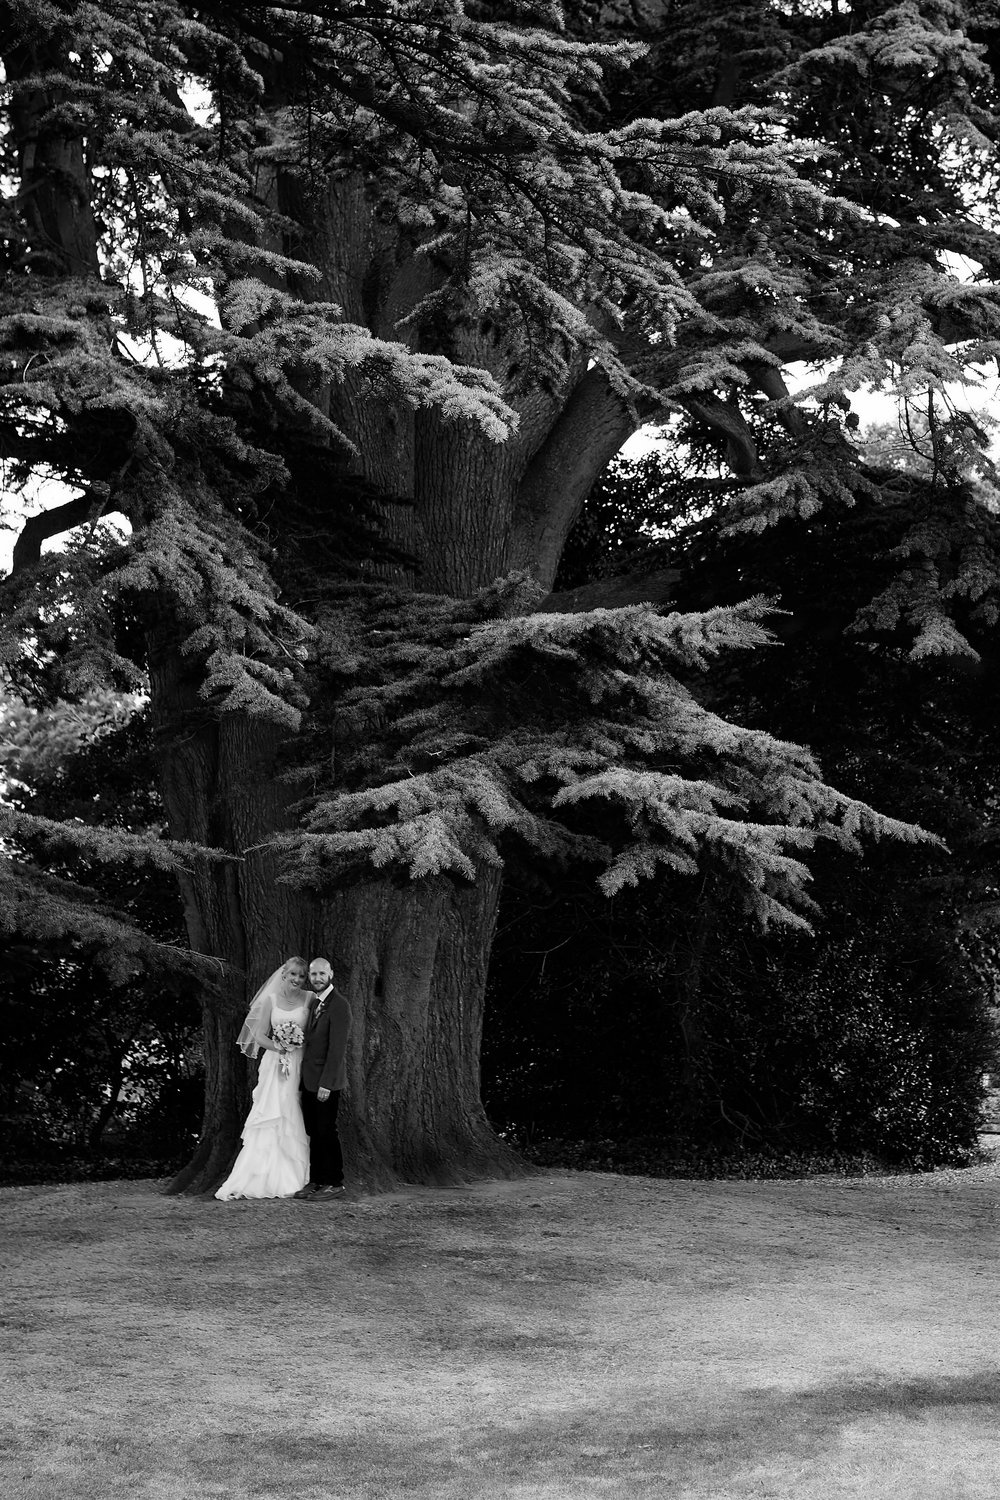 A wedding day portrait at Gunby Hall by Lincolnshire wedding photographer 166 photography